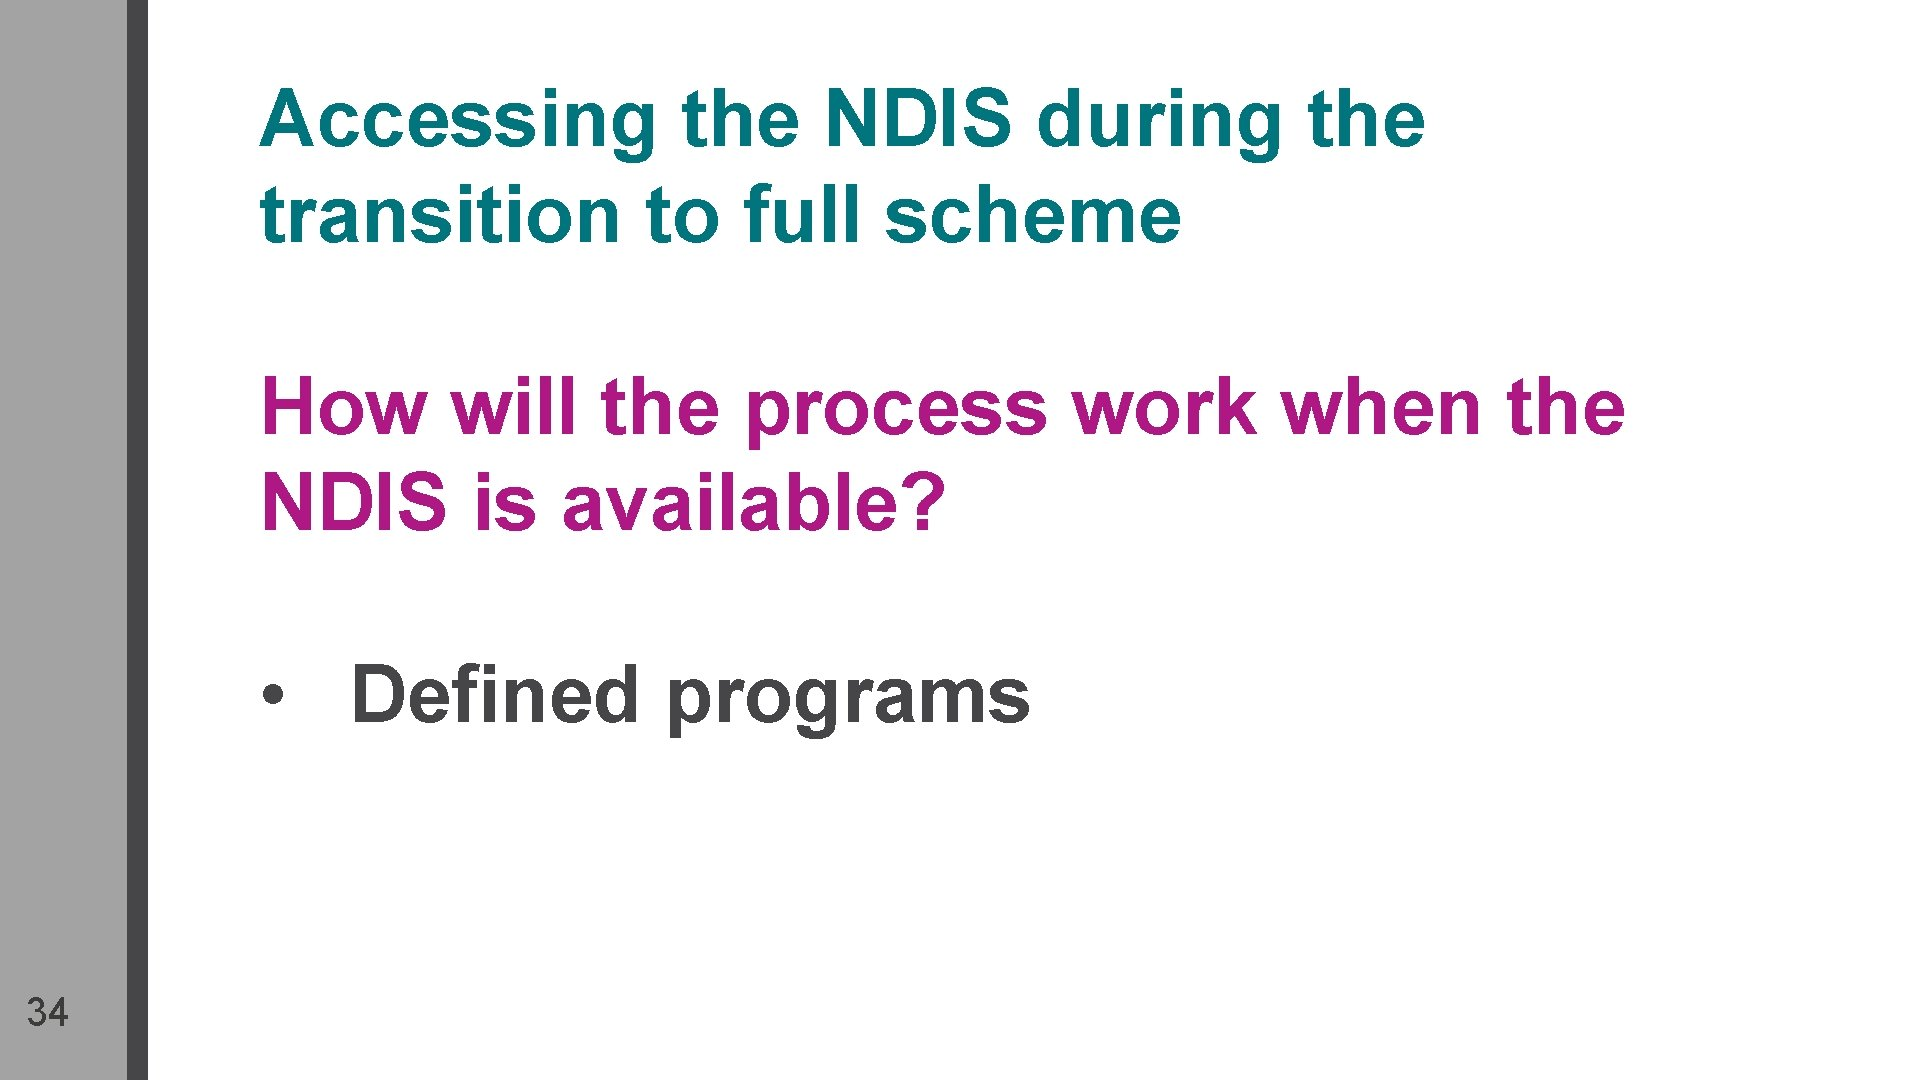 Accessing the NDIS during the transition to full scheme How will the process work